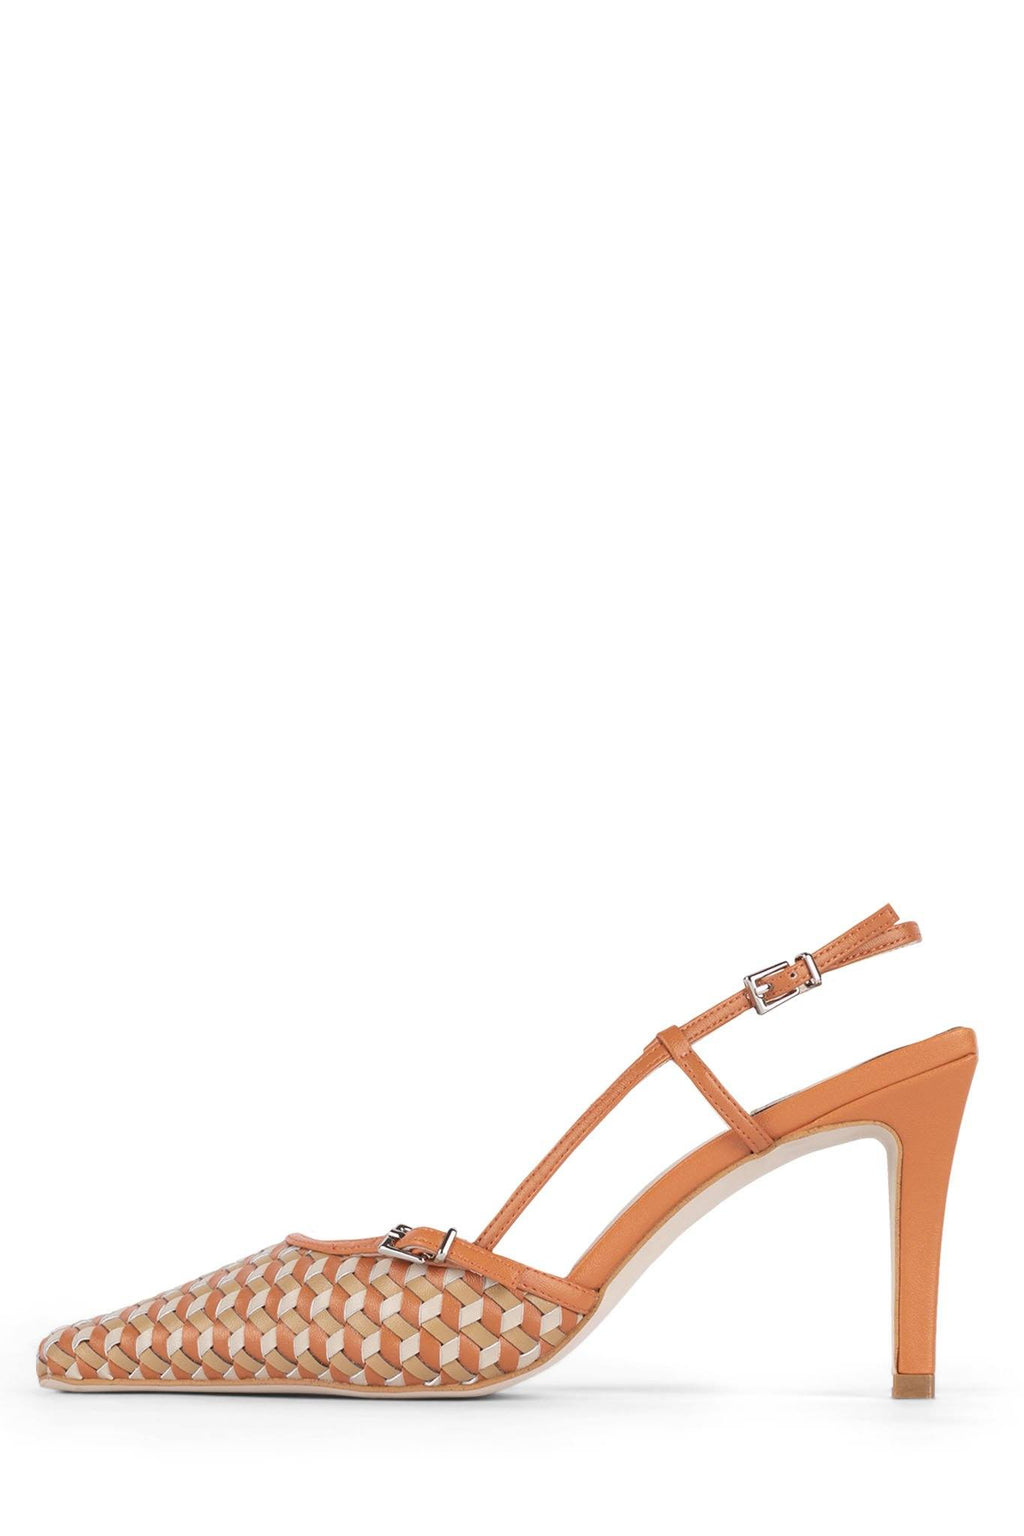 ILLUSIONS STRATEGY Orange Nude 5